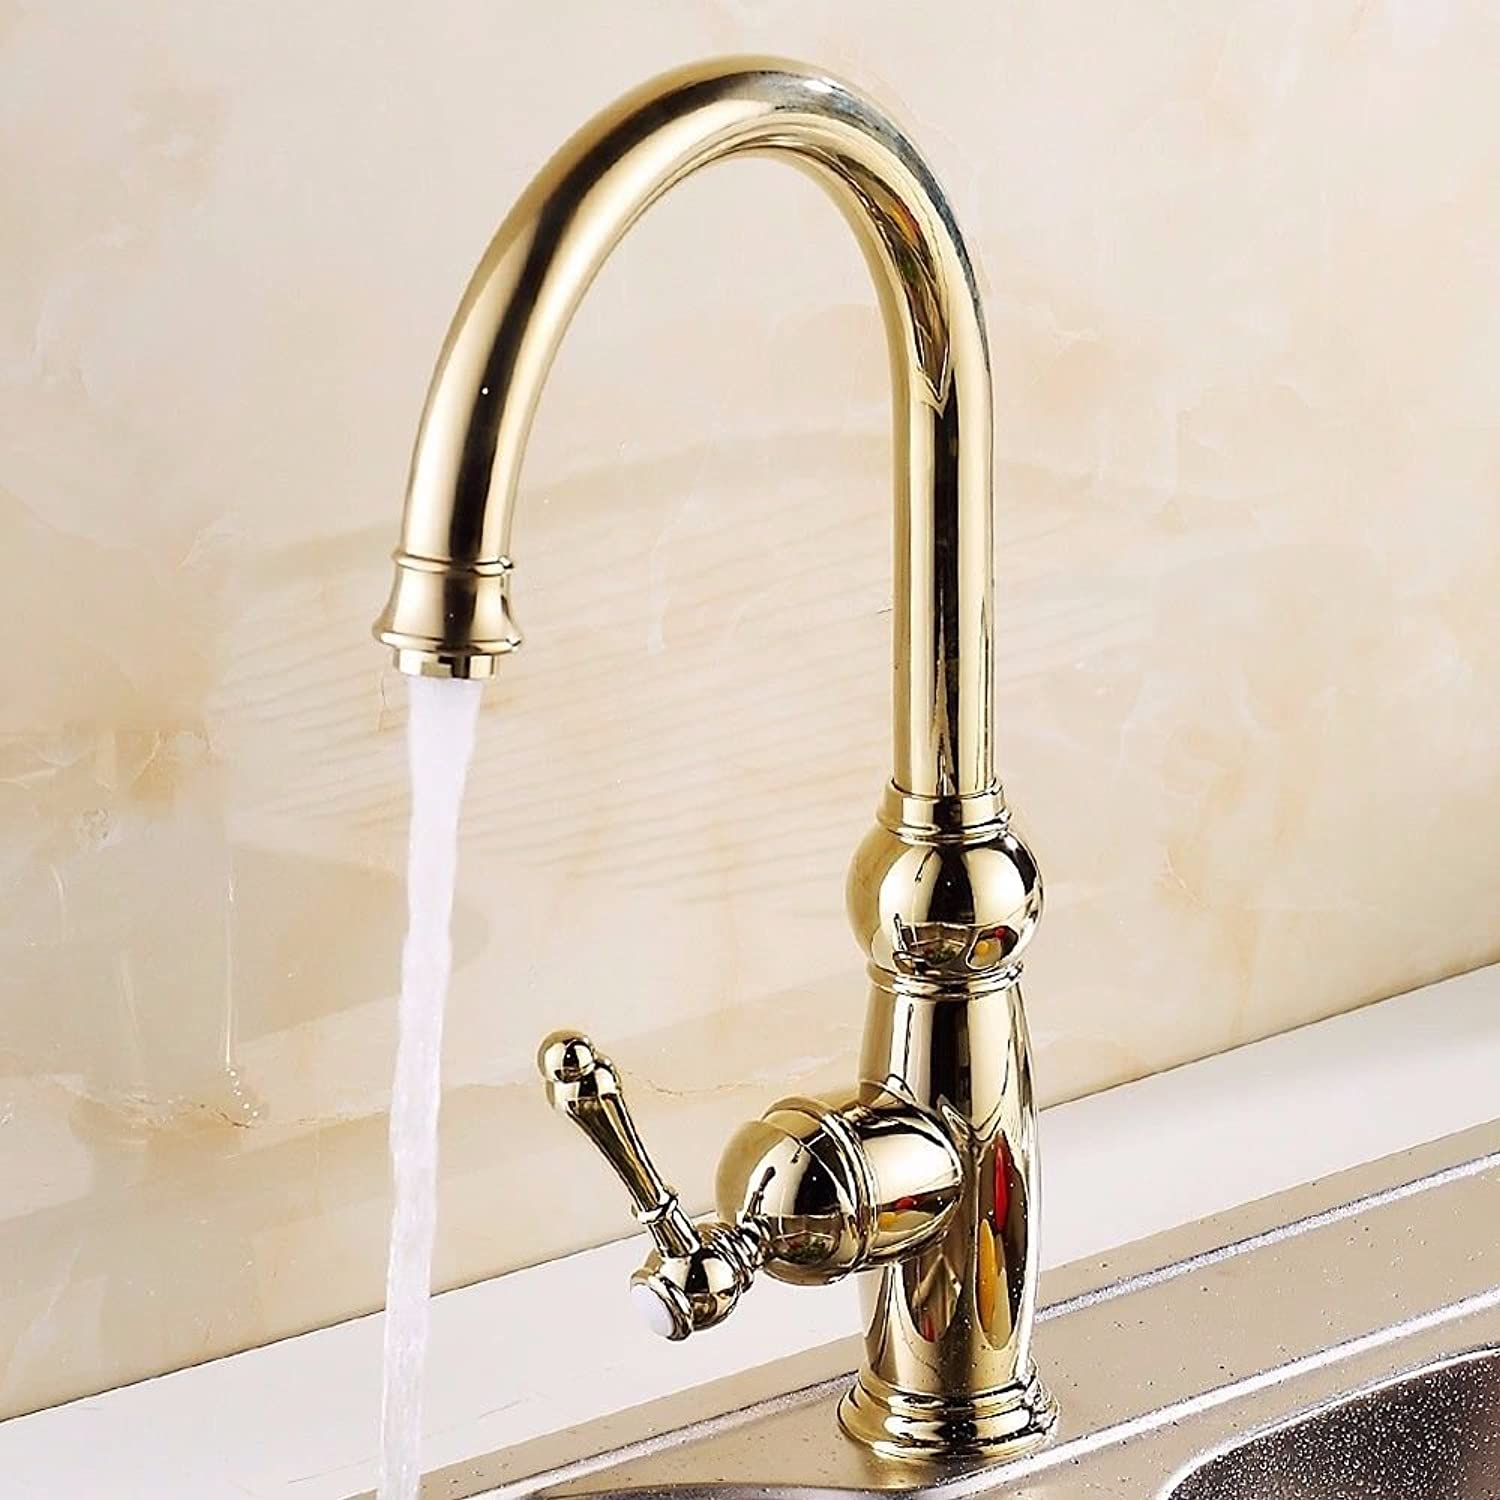 QIMEIM Kitchen Taps Sink Mixer Tap gold Hot and Cold Brass redatable Antique Kitchen Basin Sink Mixer Tap Kitchen Faucet